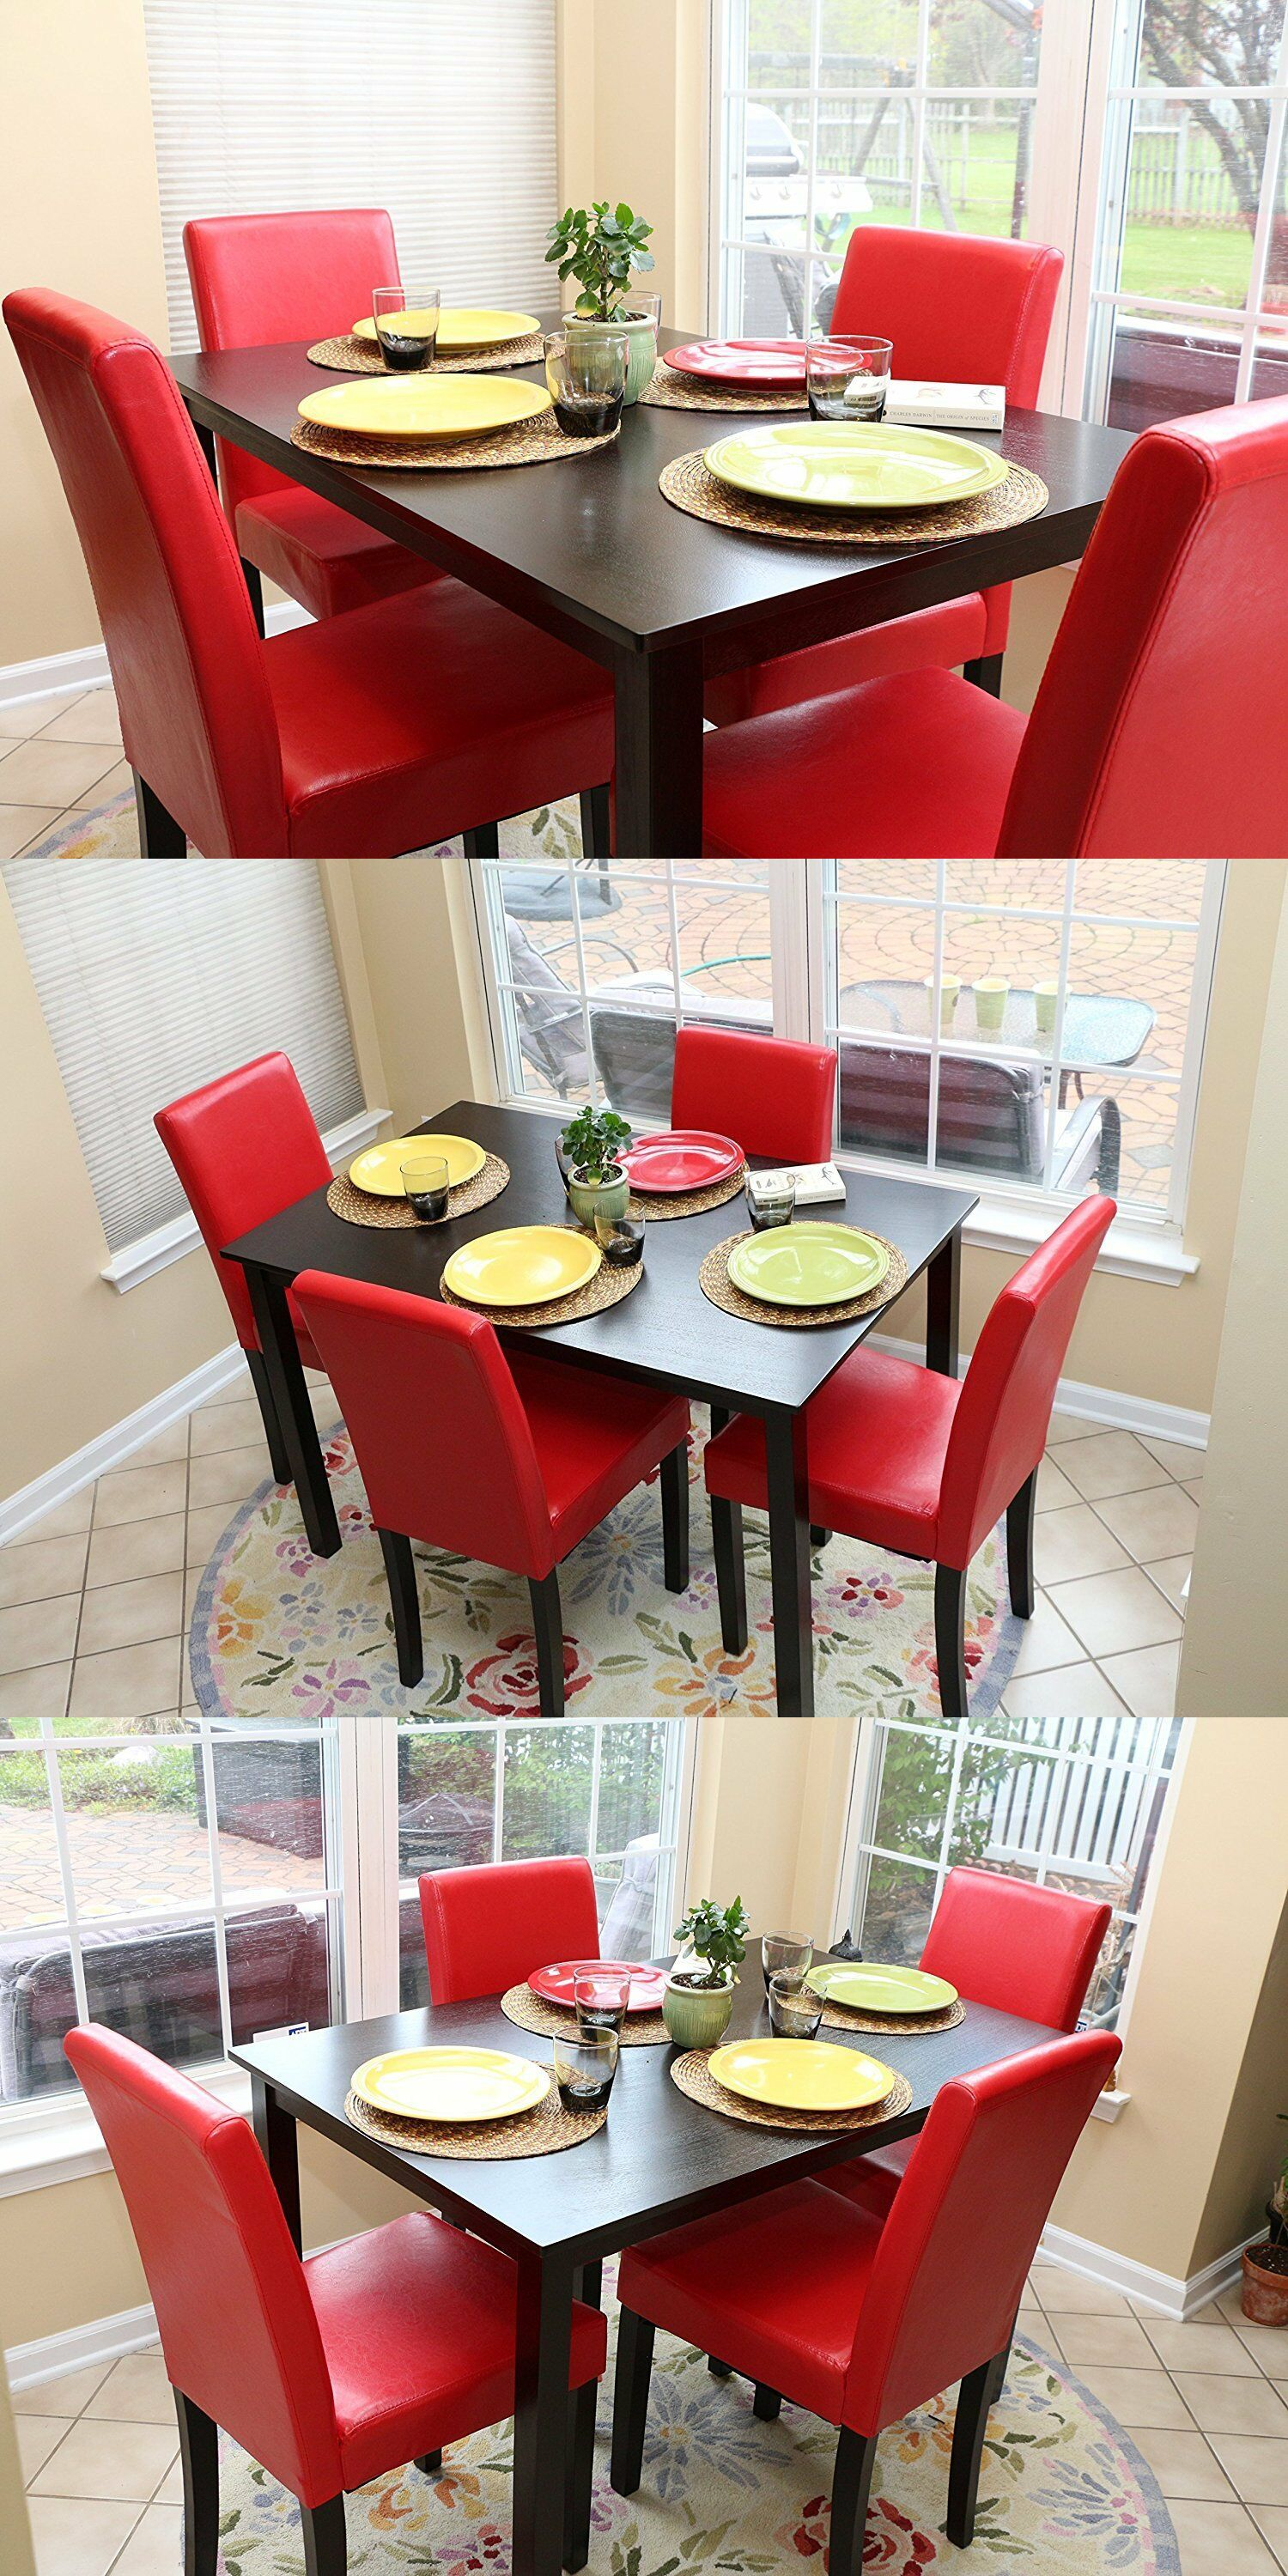 Dining Sets 107578 5 Pc Red Leather 4 Person Table And Chairs Red Dining Dinette Buy It Now Only Table And Chairs Formal Dining Tables Glass Dining Table